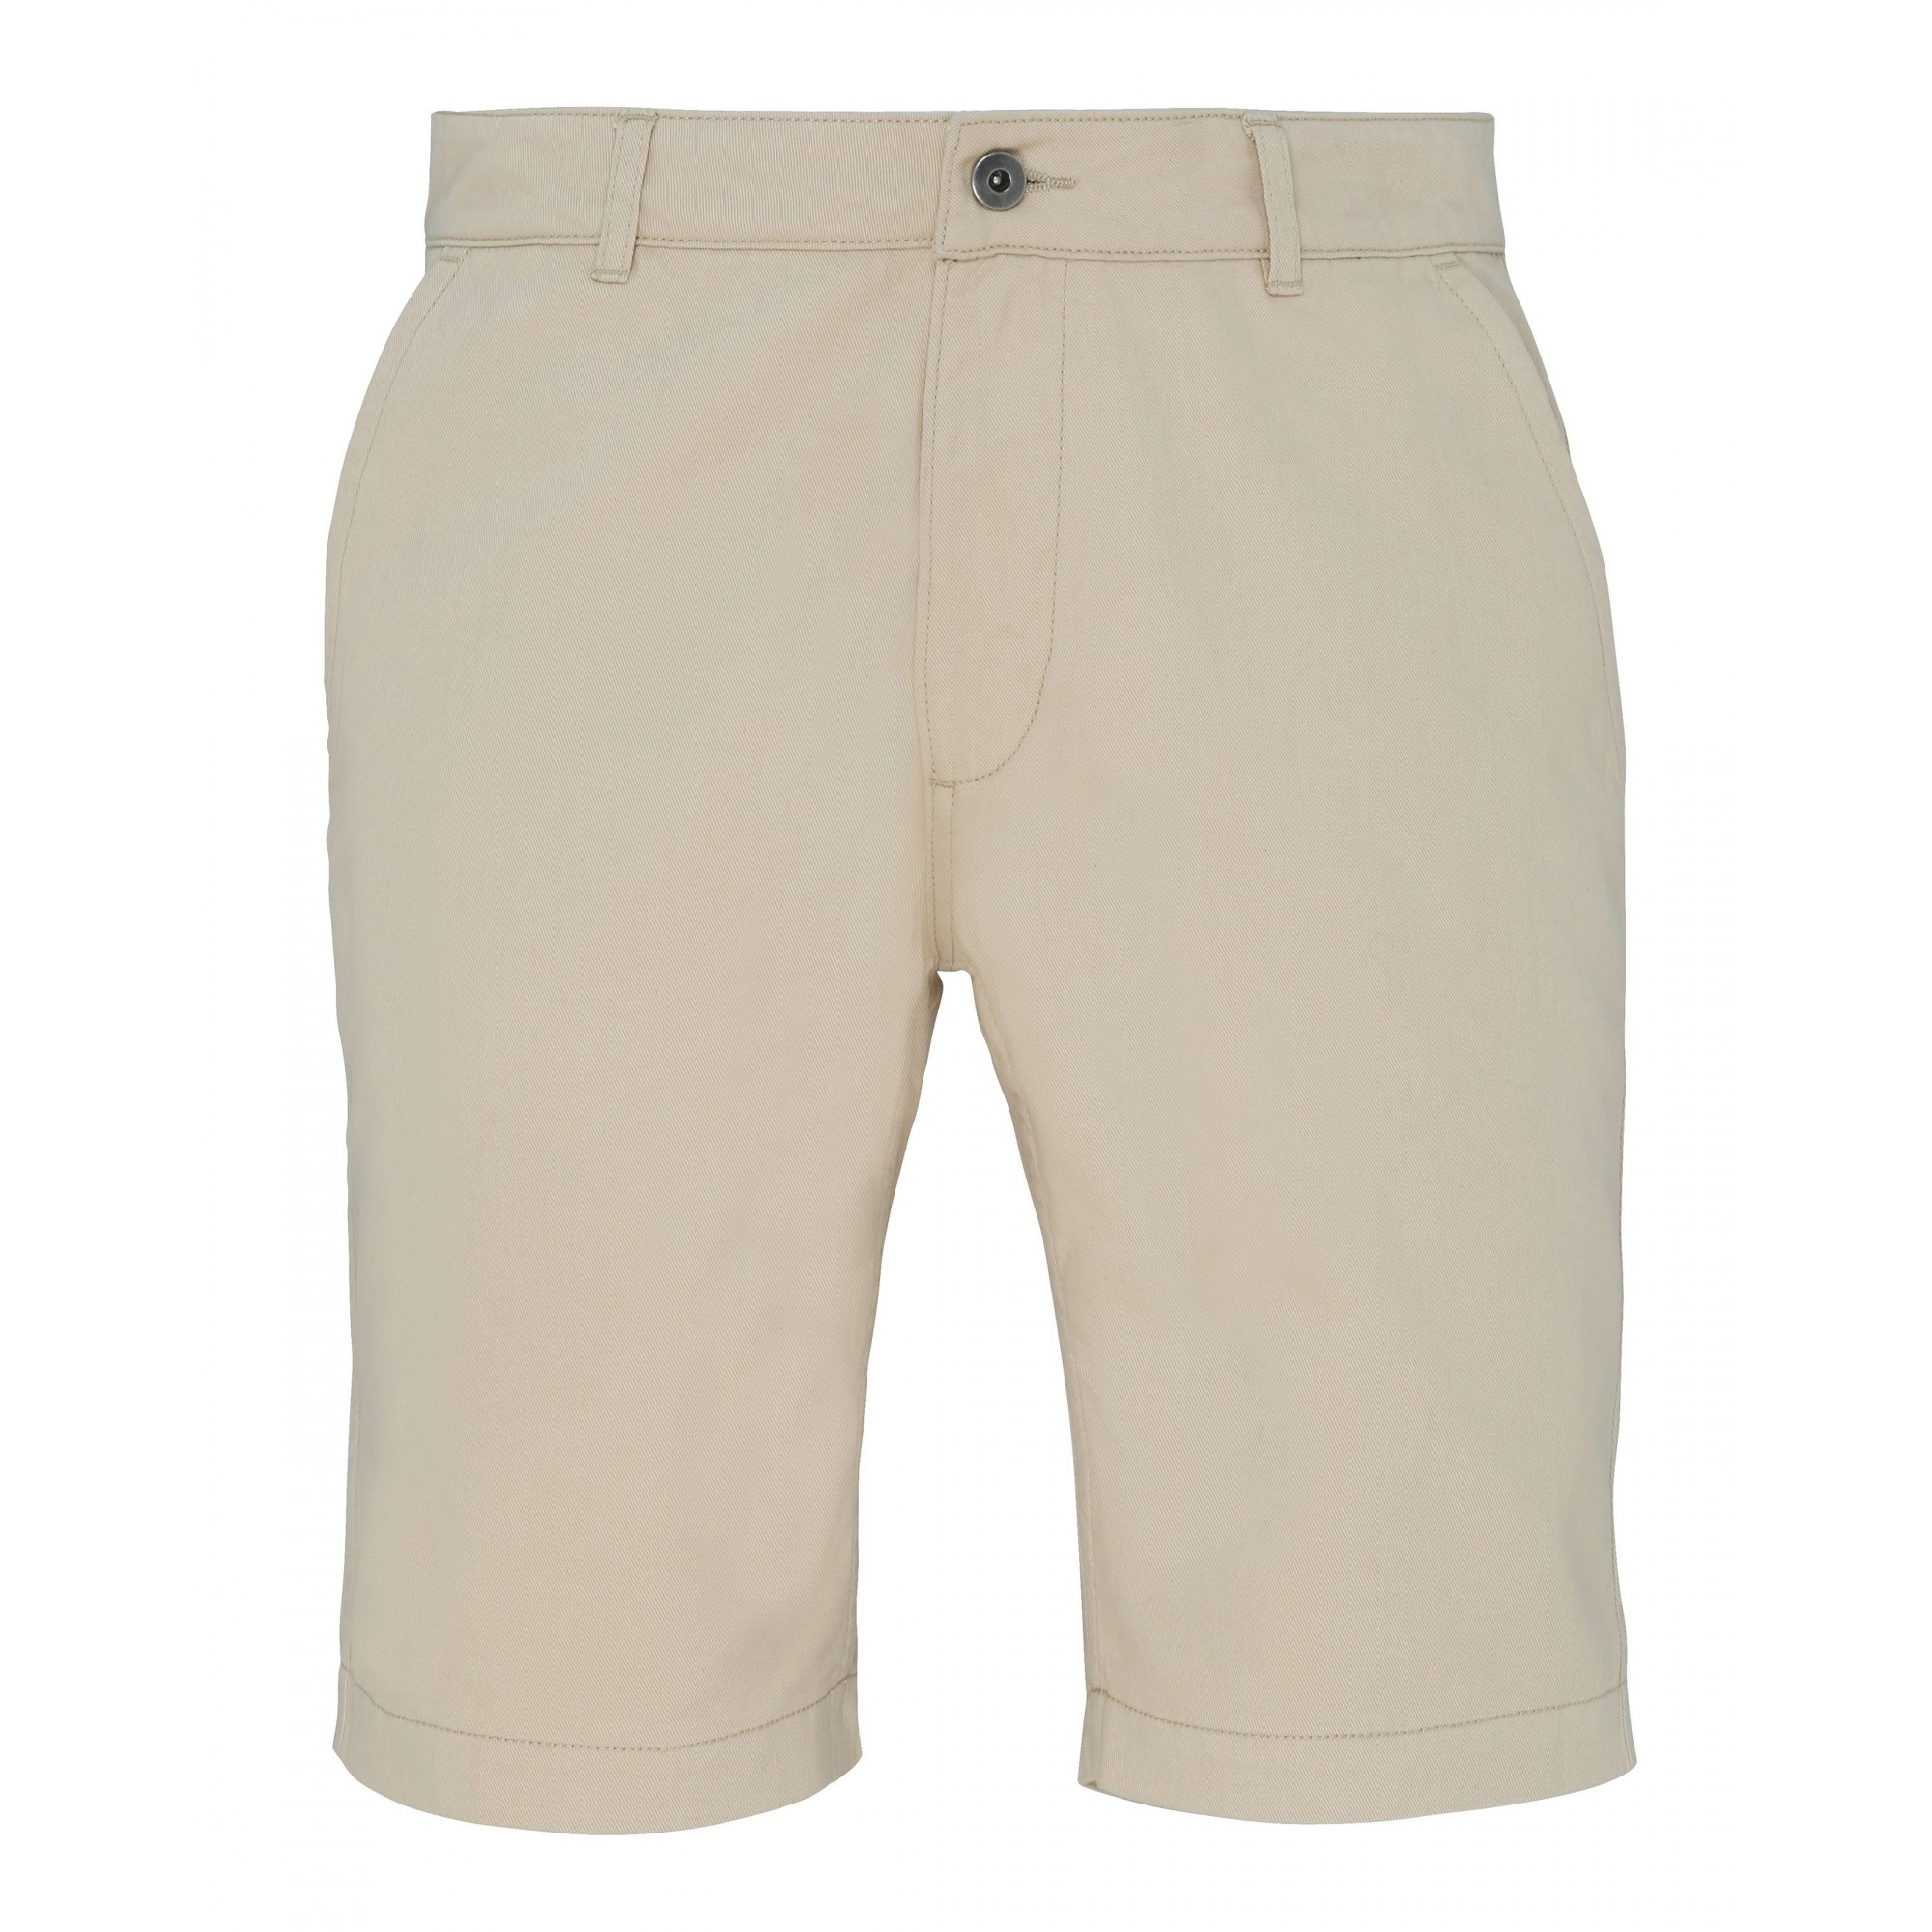 Asquith-amp-Fox-Mens-Casual-Chino-Shorts-RW4908